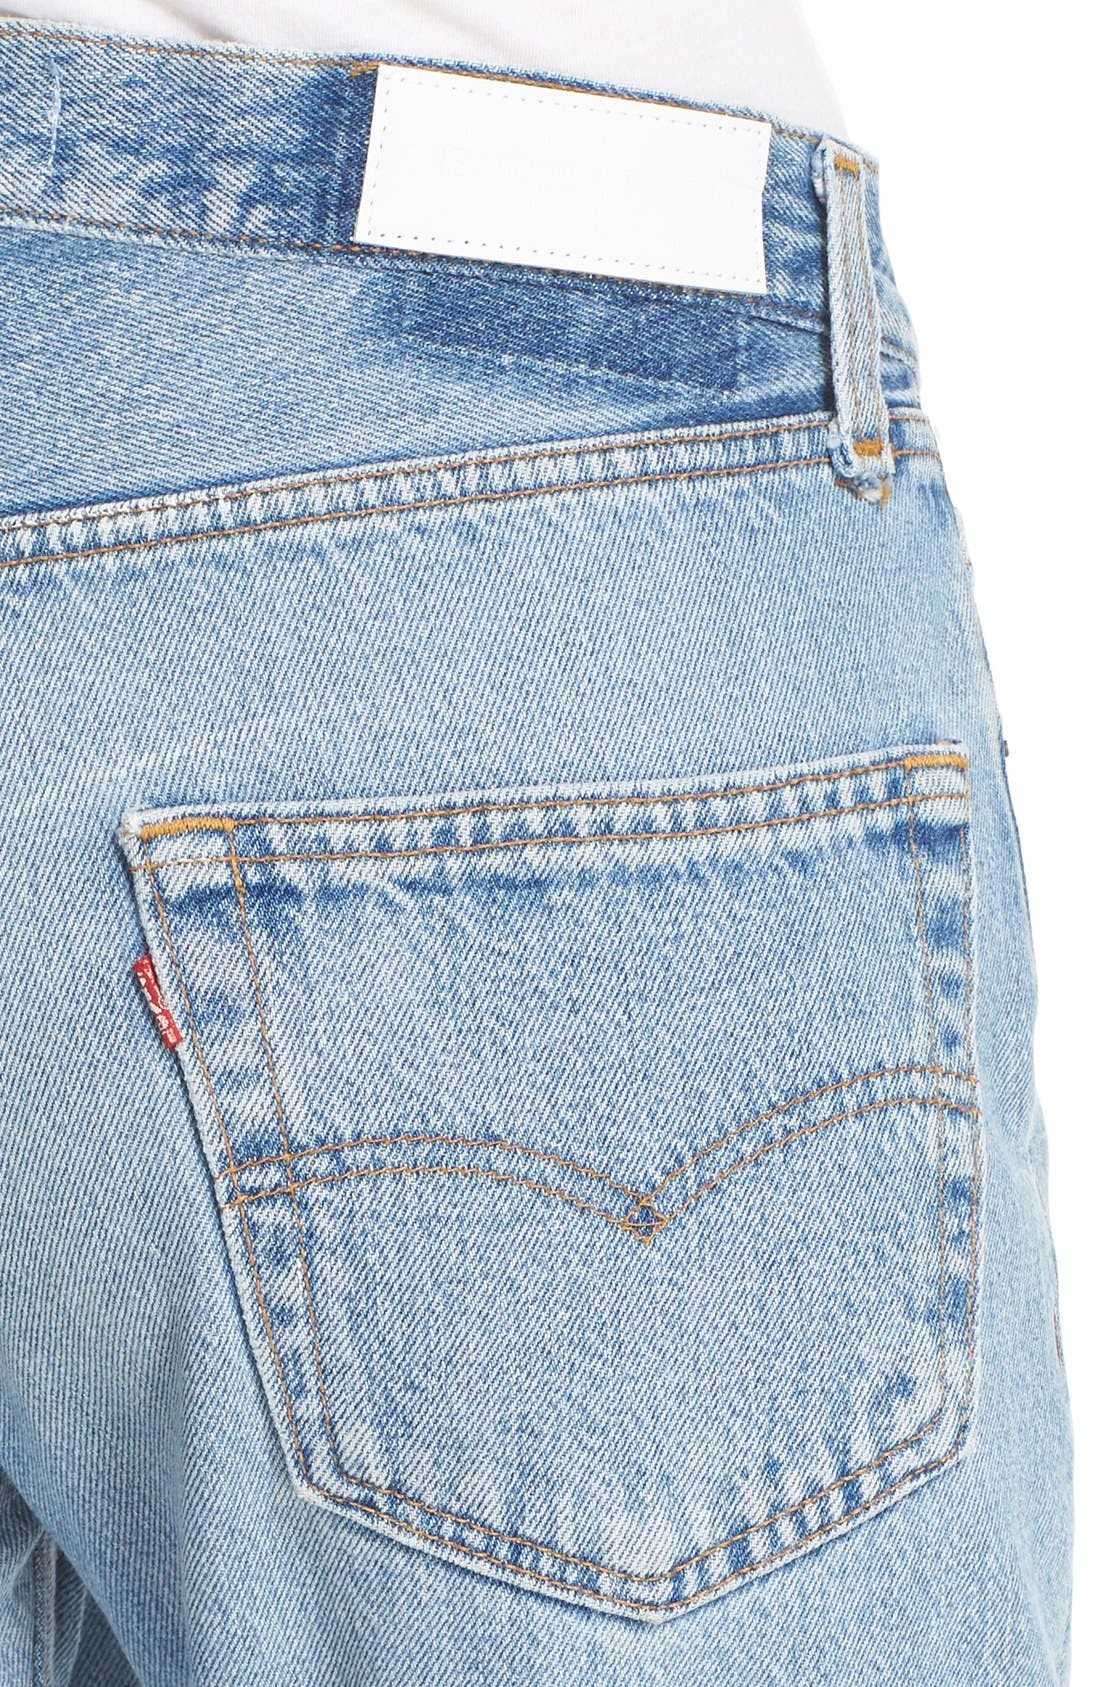 'The Relaxed Crop' Reconstructed Jeans,                             Alternate thumbnail 4, color,                             No Destruction